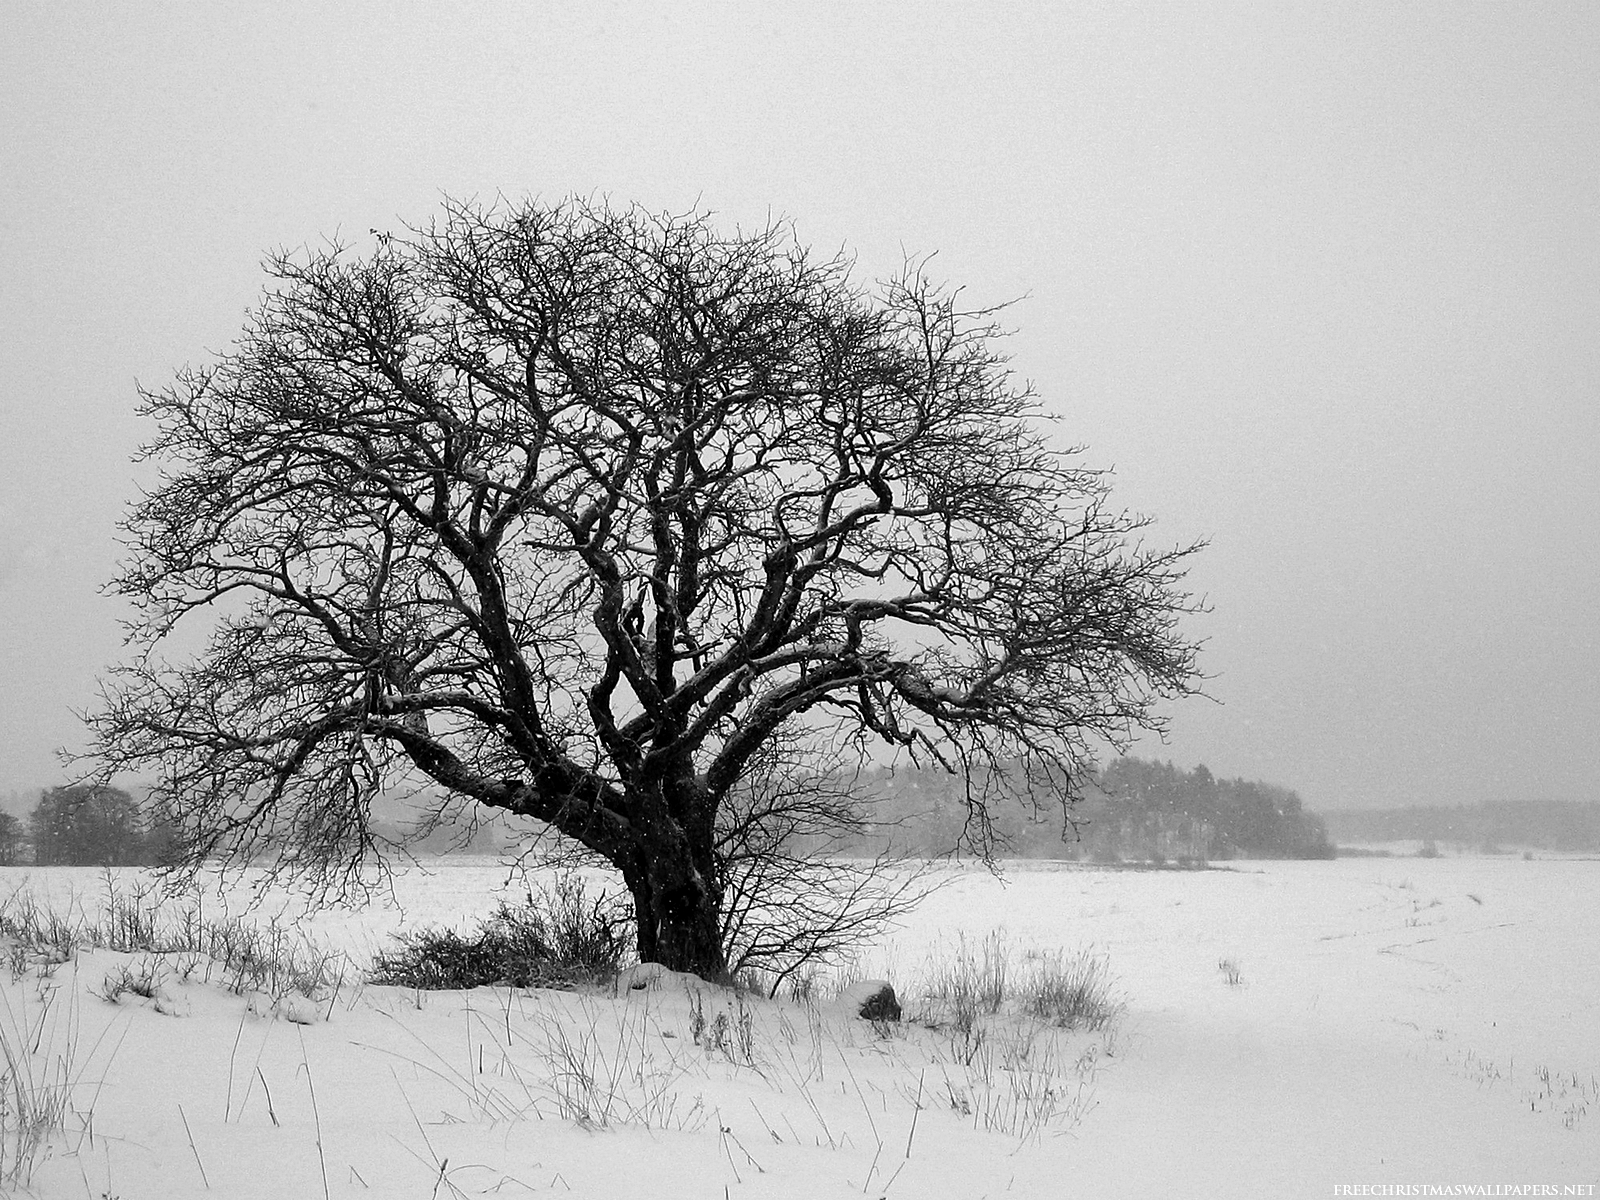 The colorless mark of winter | Chroma Zone